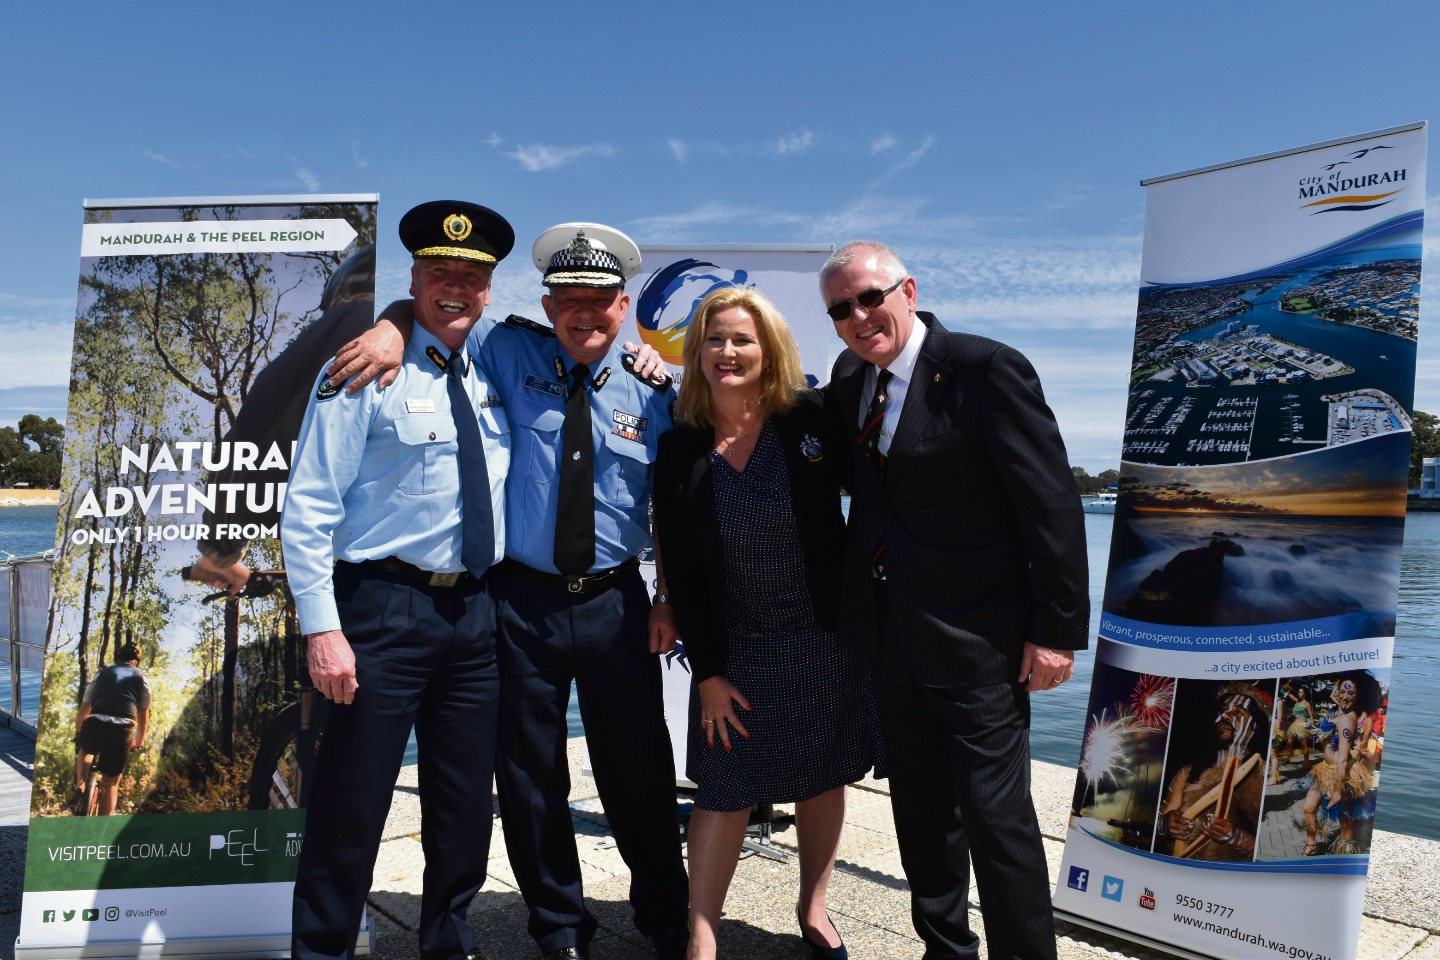 Department of Fire & Emergency Services Commissioner Wayne Gregson, Chairman of the Western Australia Police Sports Federation, WA Police Deputy Commissioner Stephen Brown, Mandurah Mayor Marina Vergone and St John Ambulance Chief Executive Tony Ahern.